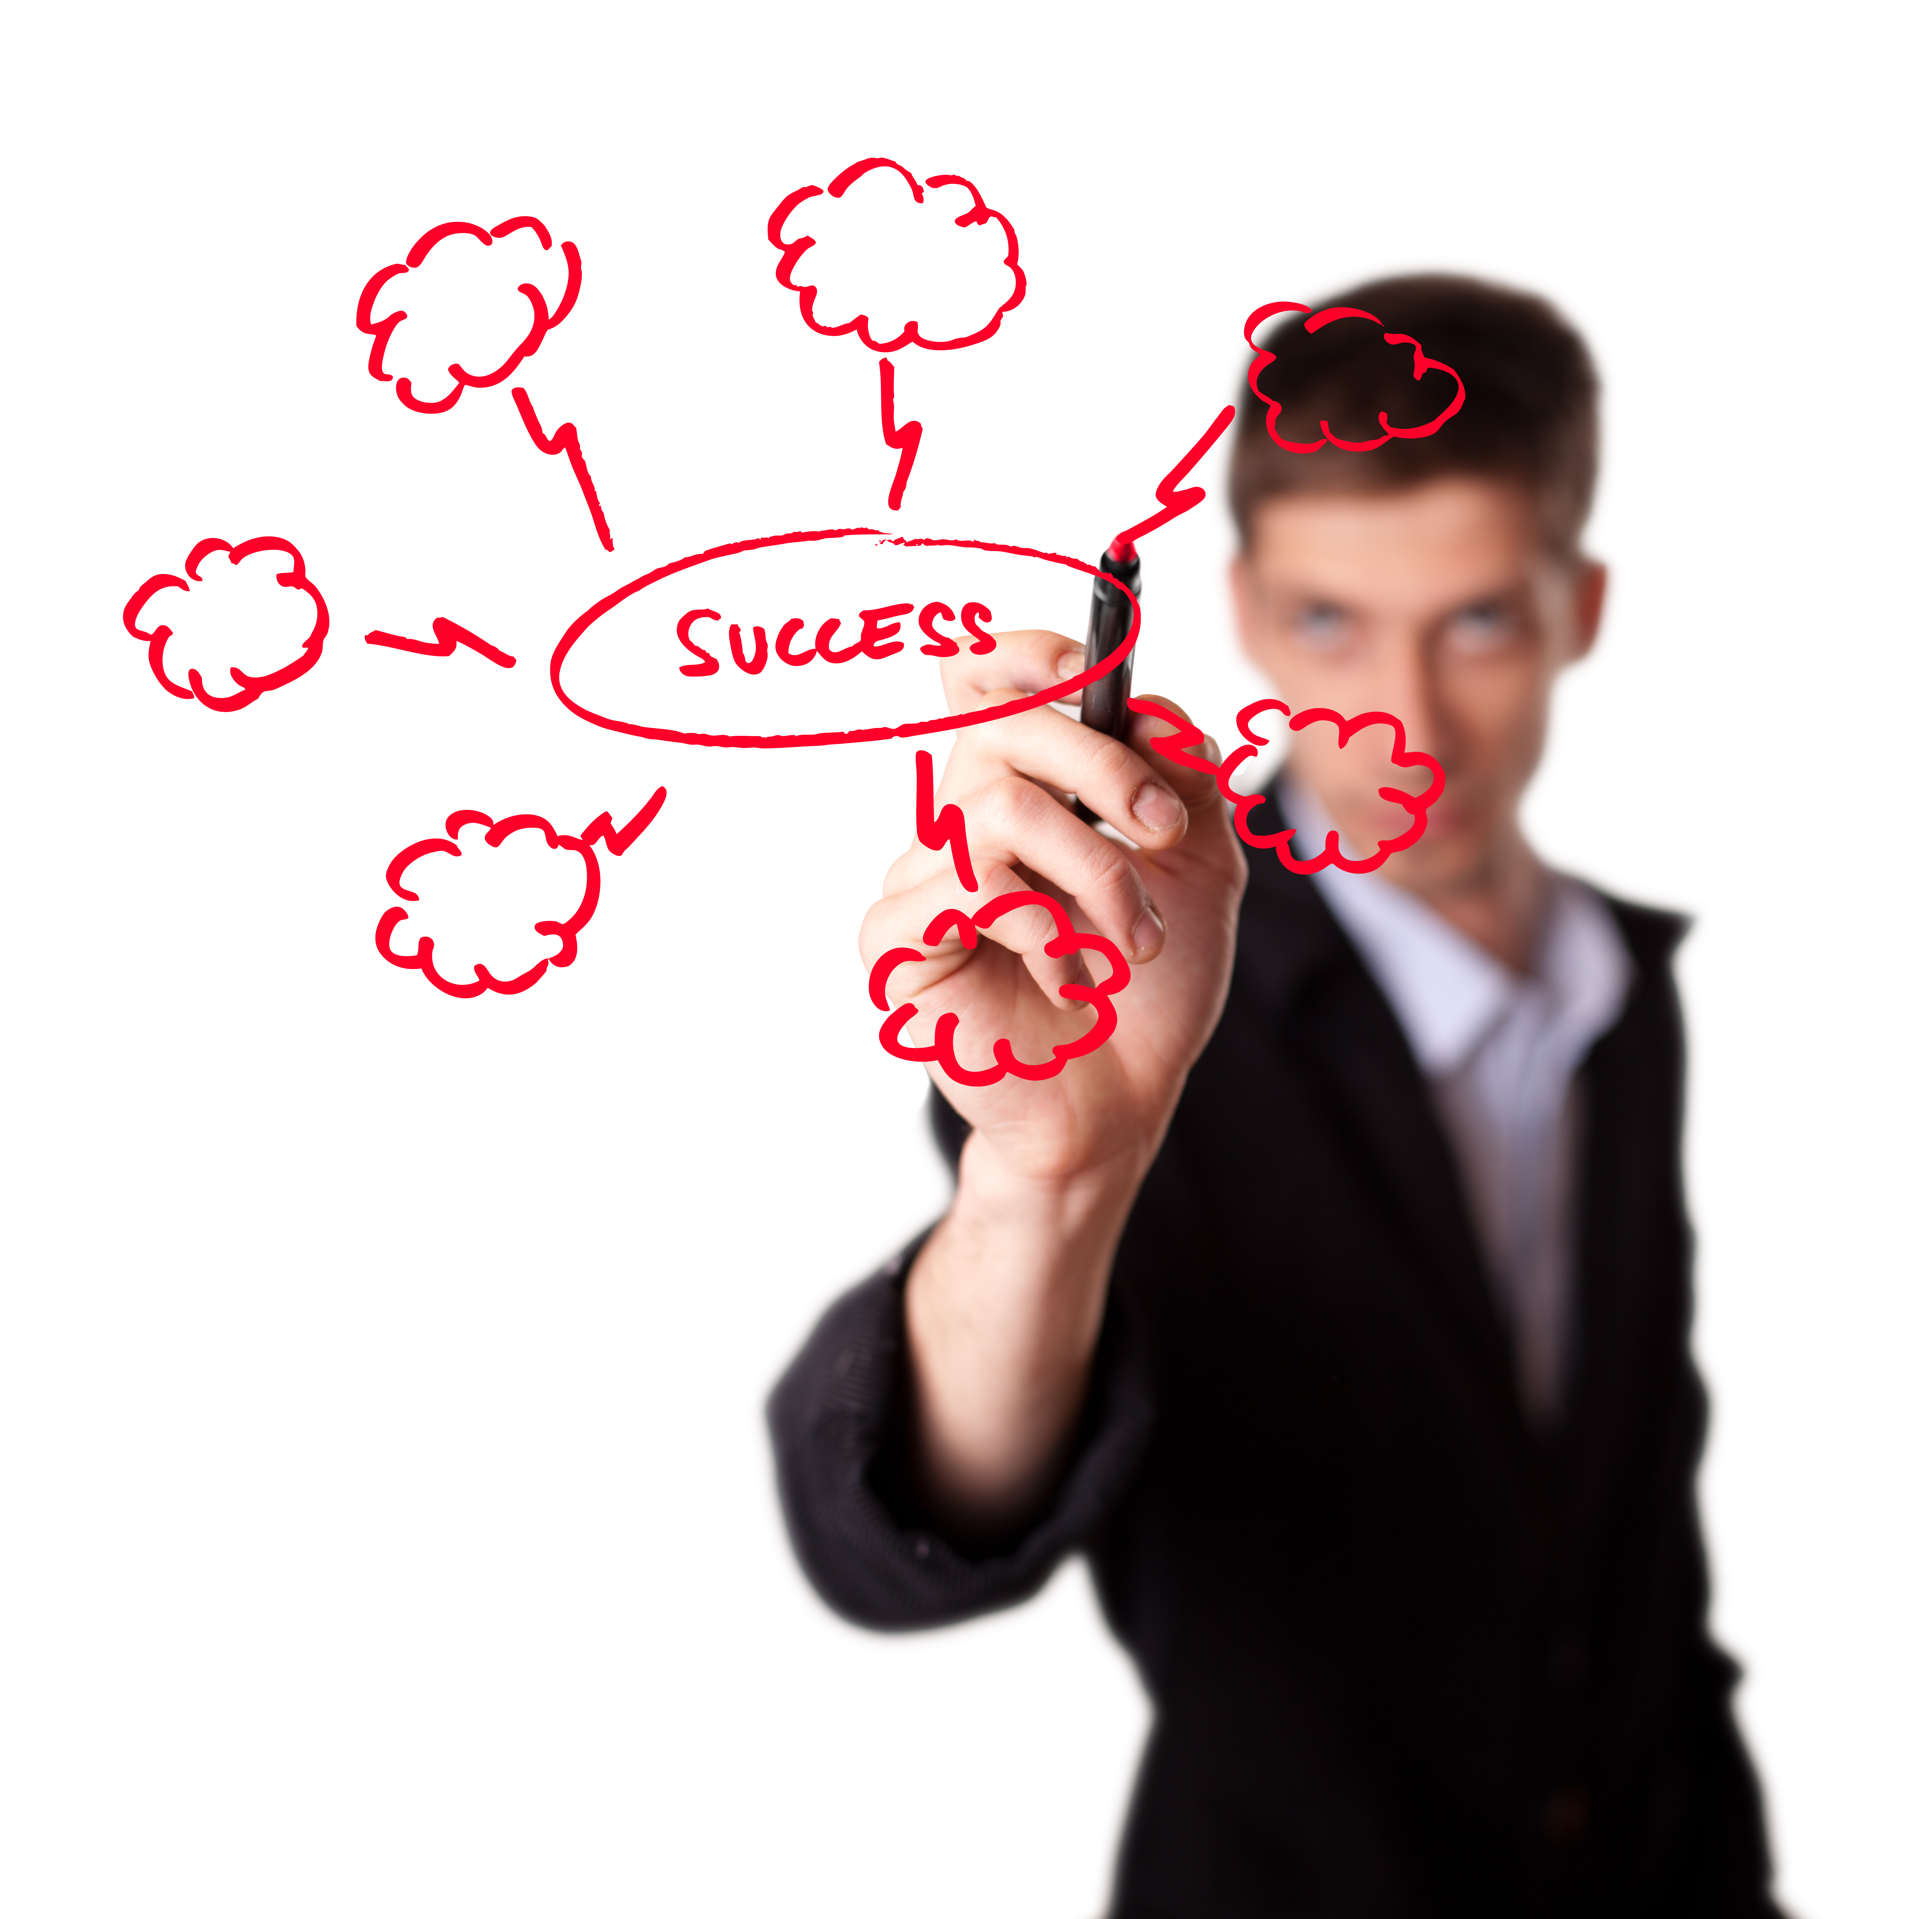 Image of a Man with a strategy plan to be successful - represents that Success is just another word for being able to Get what you want in life